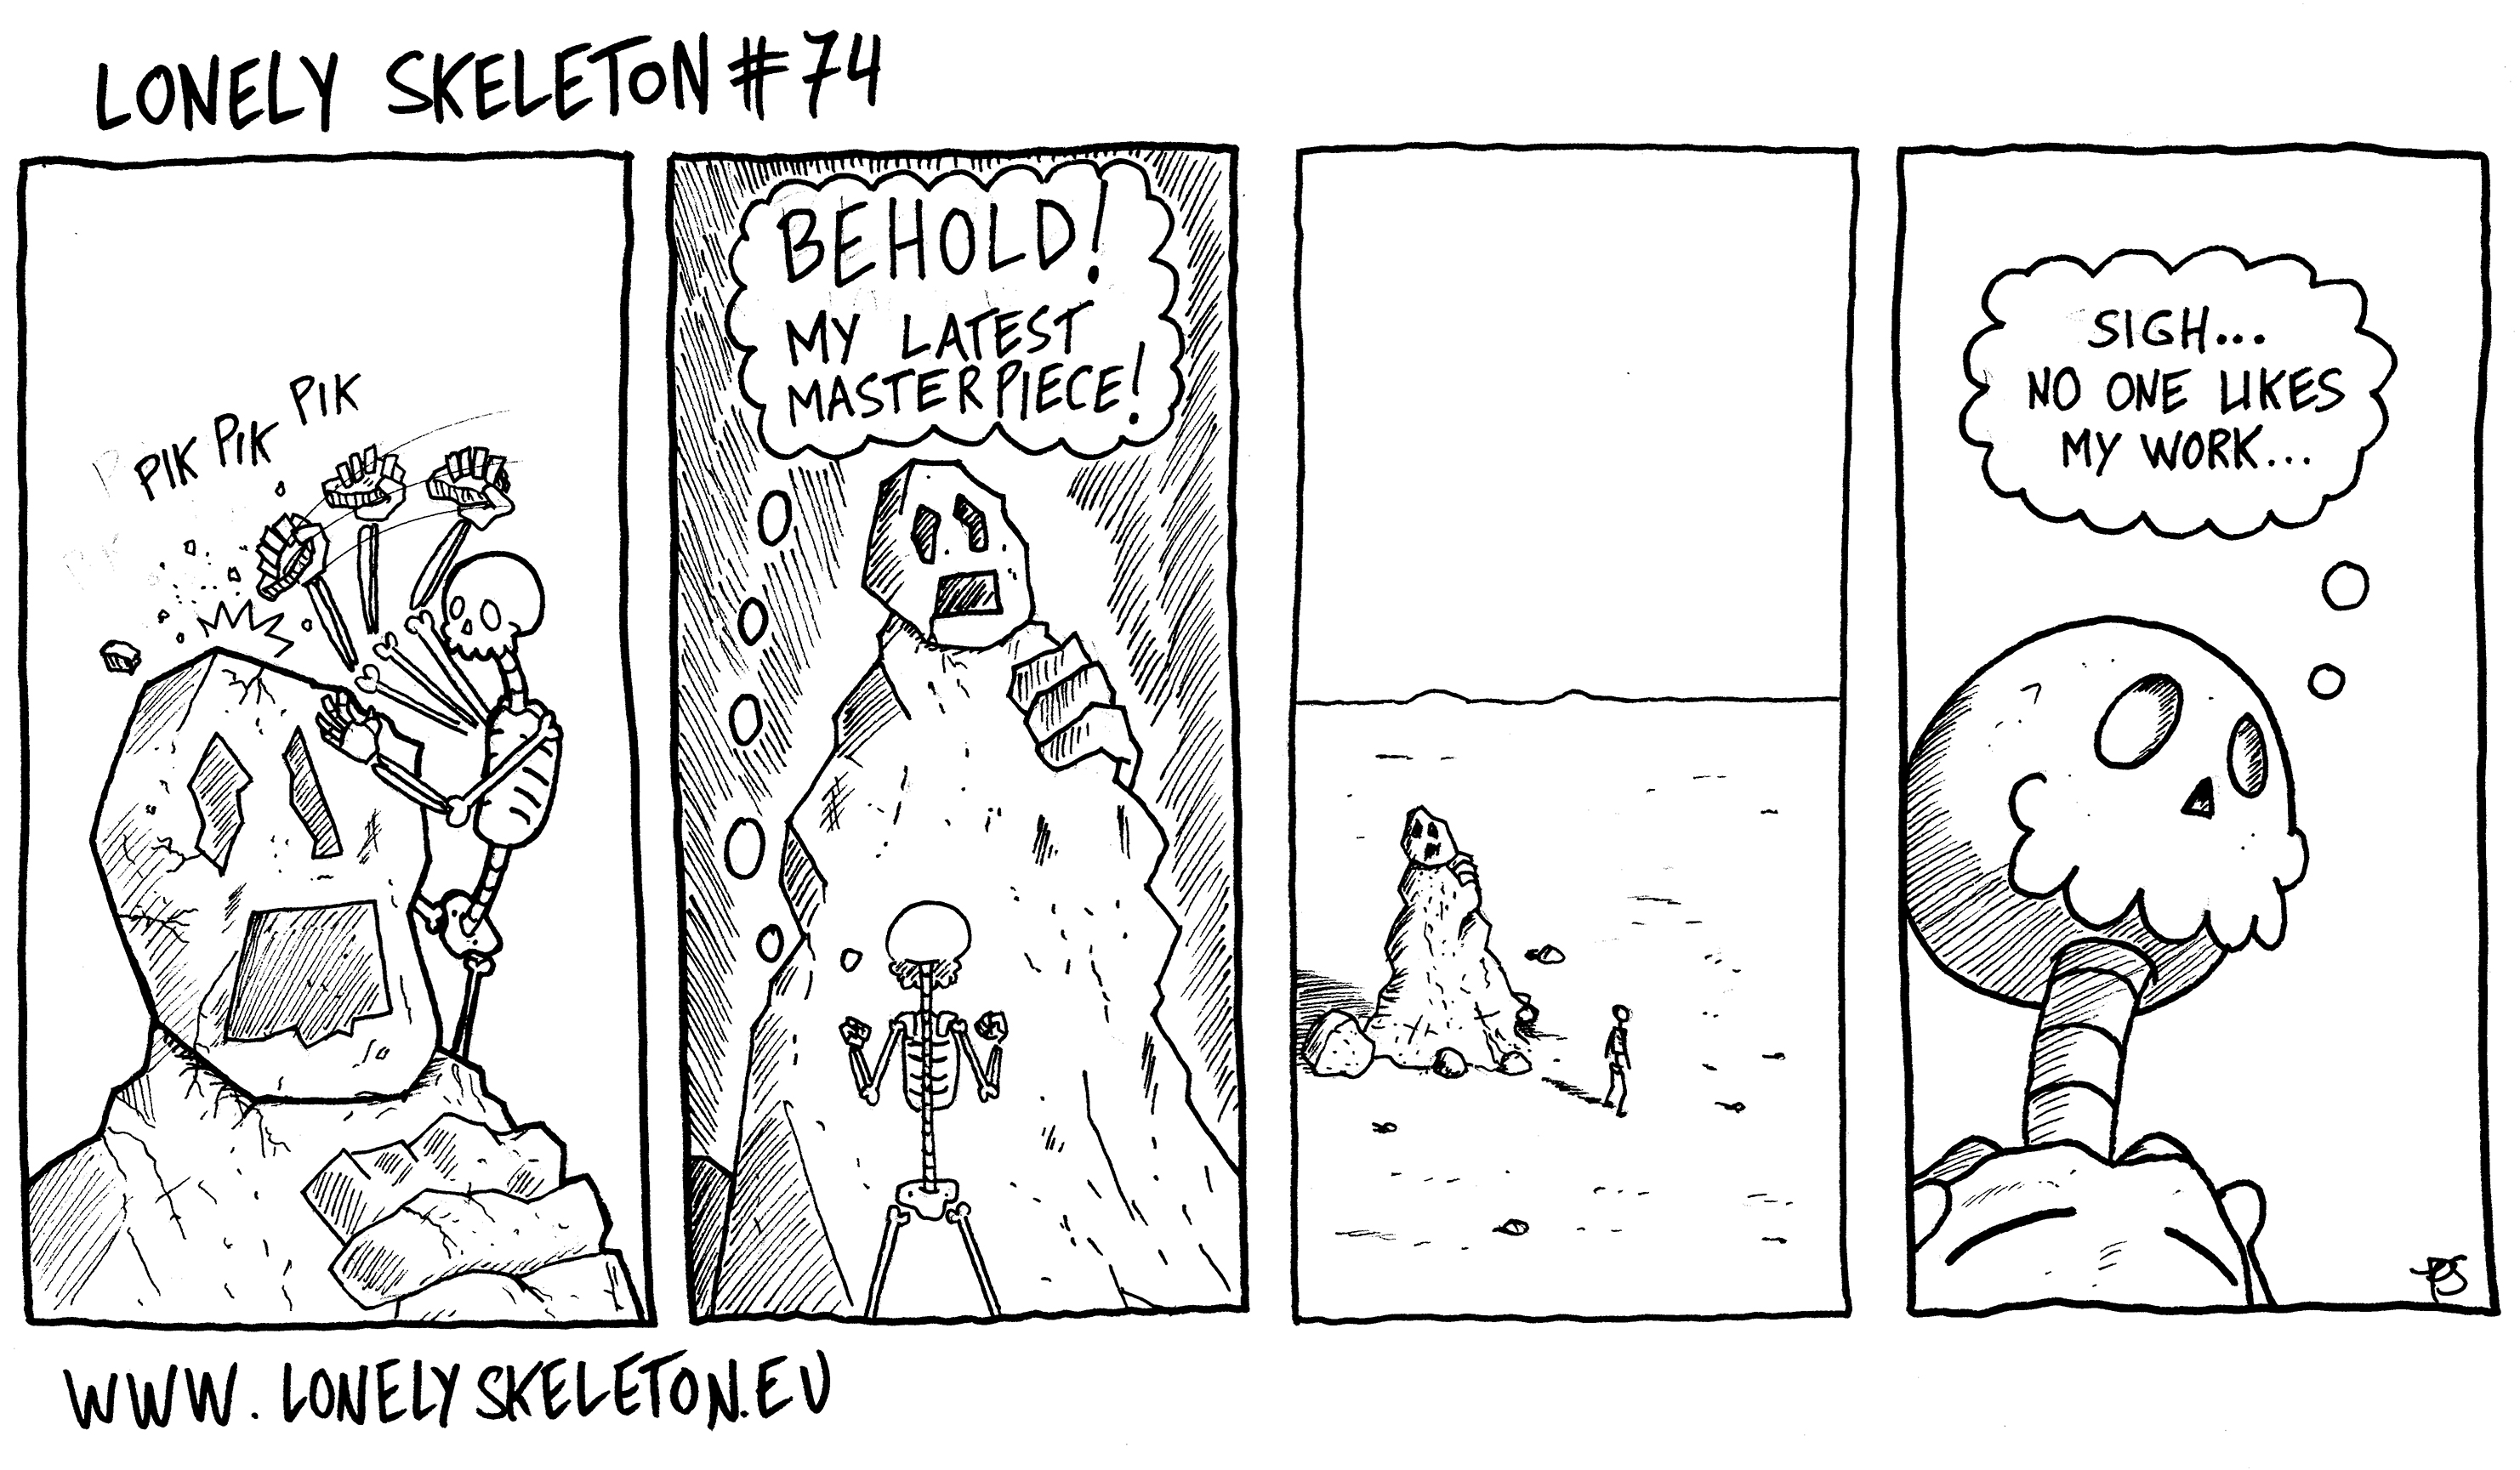 Lonely Skeleton #74